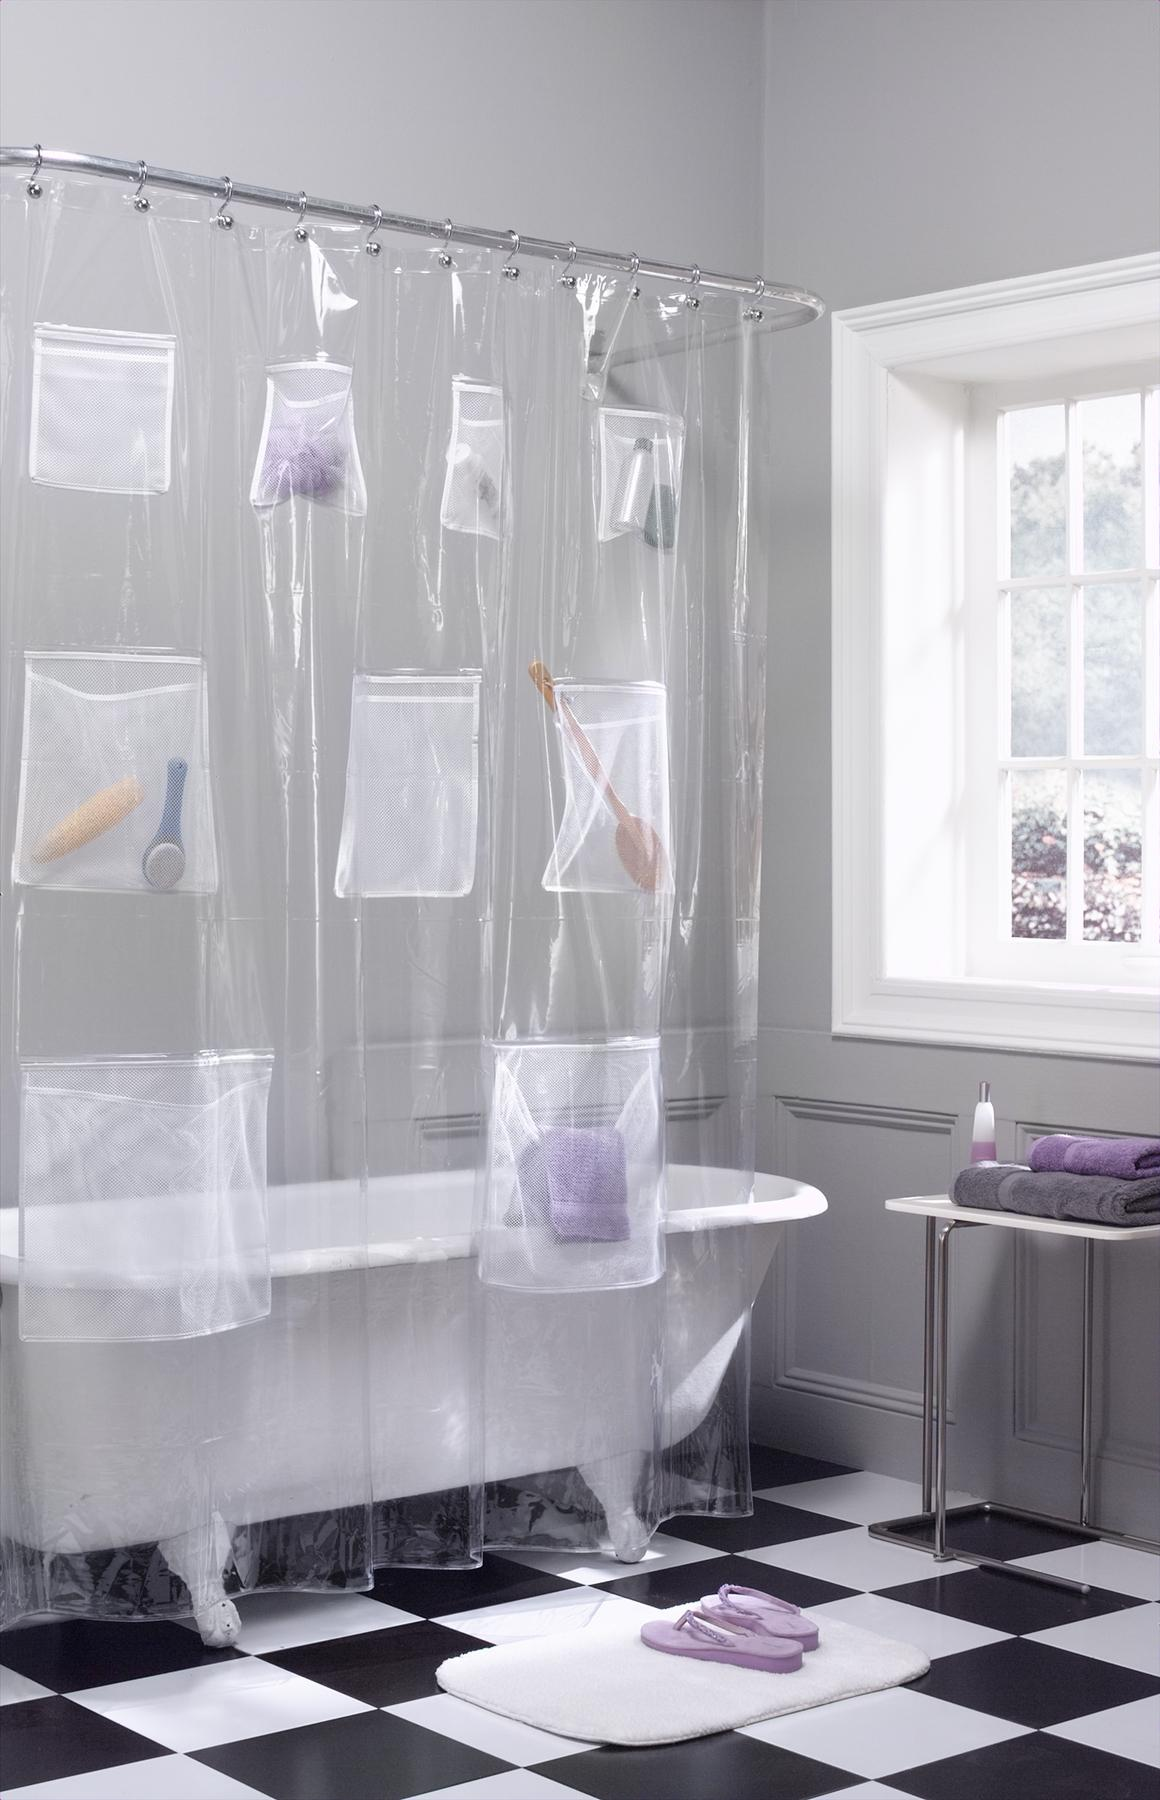 Unique Clear Shower Curtain With Design And Pocket Plus White Tub